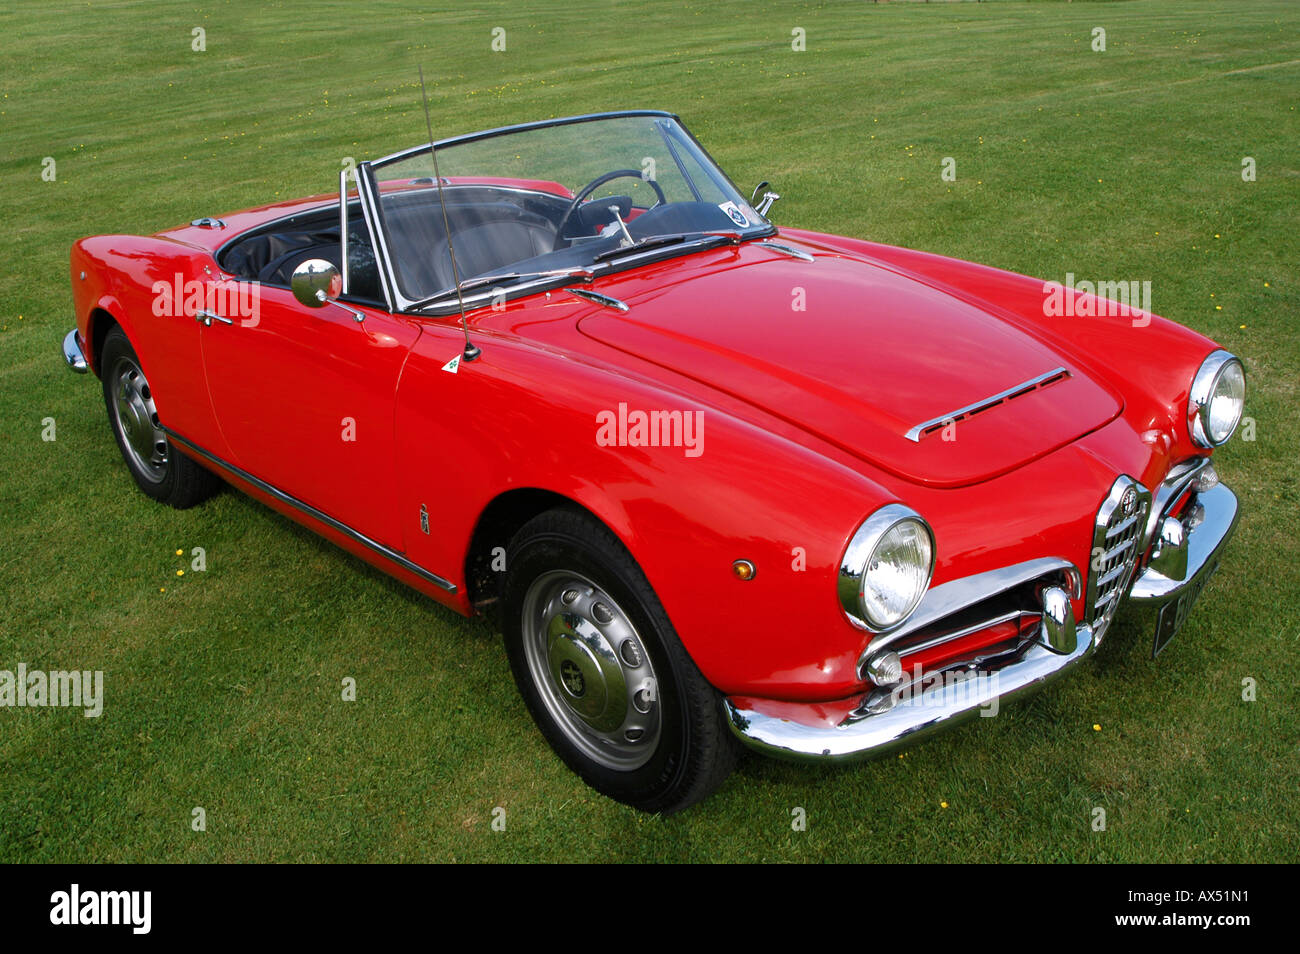 Front Detail Of A Red Alfa Romeo Giulia 1964 1600cc Classic Sports